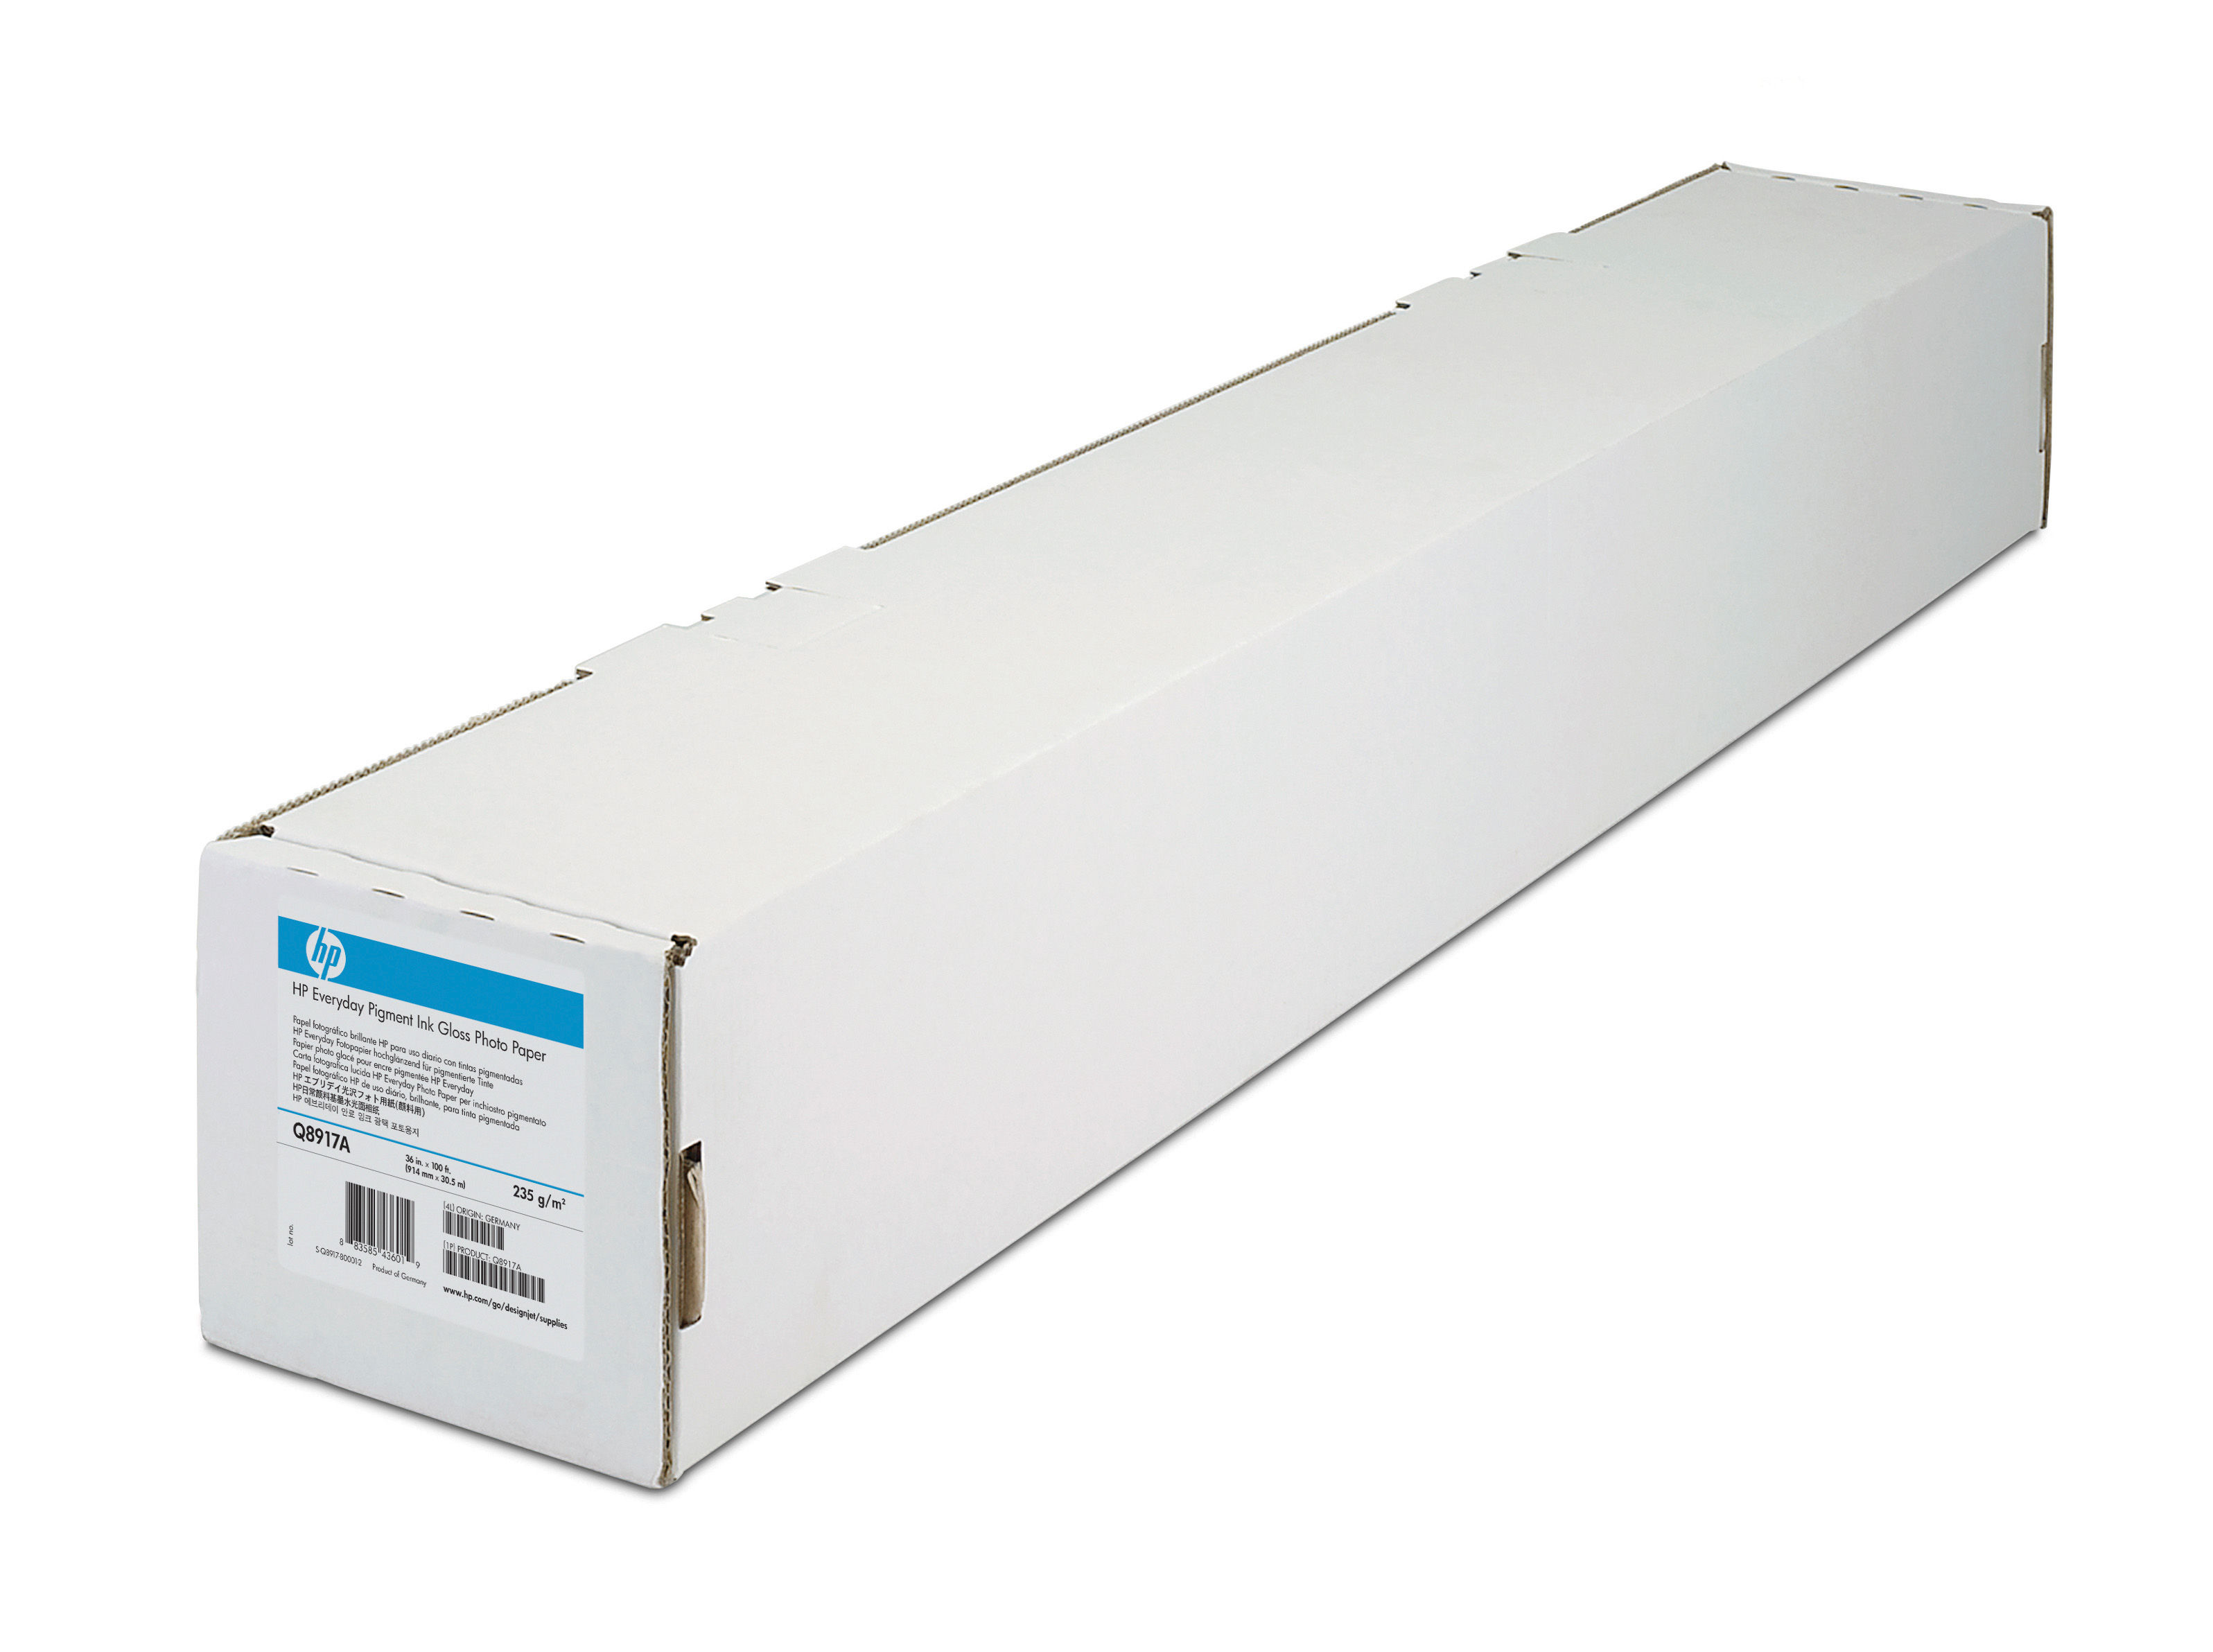 Heavyweight Coated Paper 36 C6030c - WC01